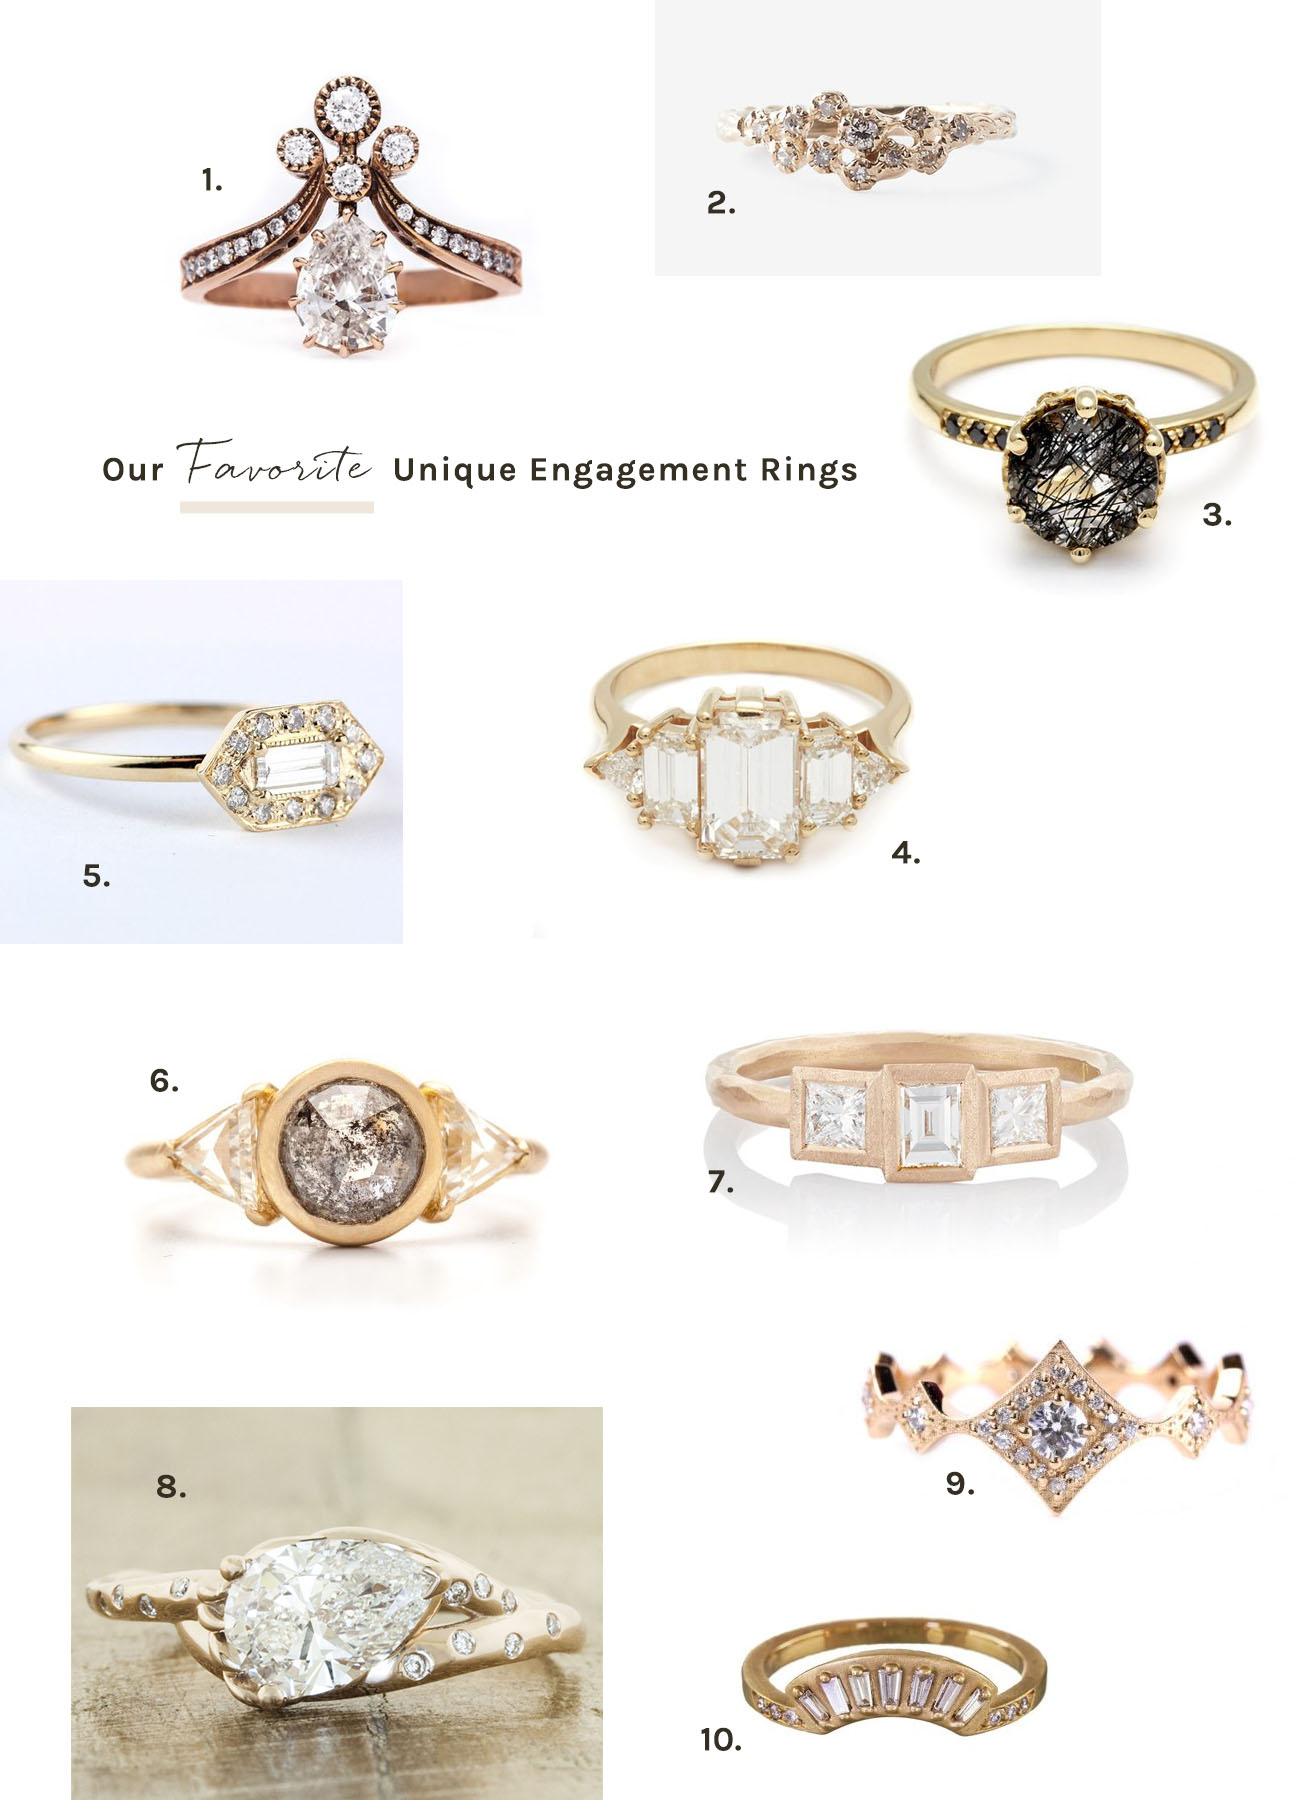 Our Favorite Unique Engagement Rings